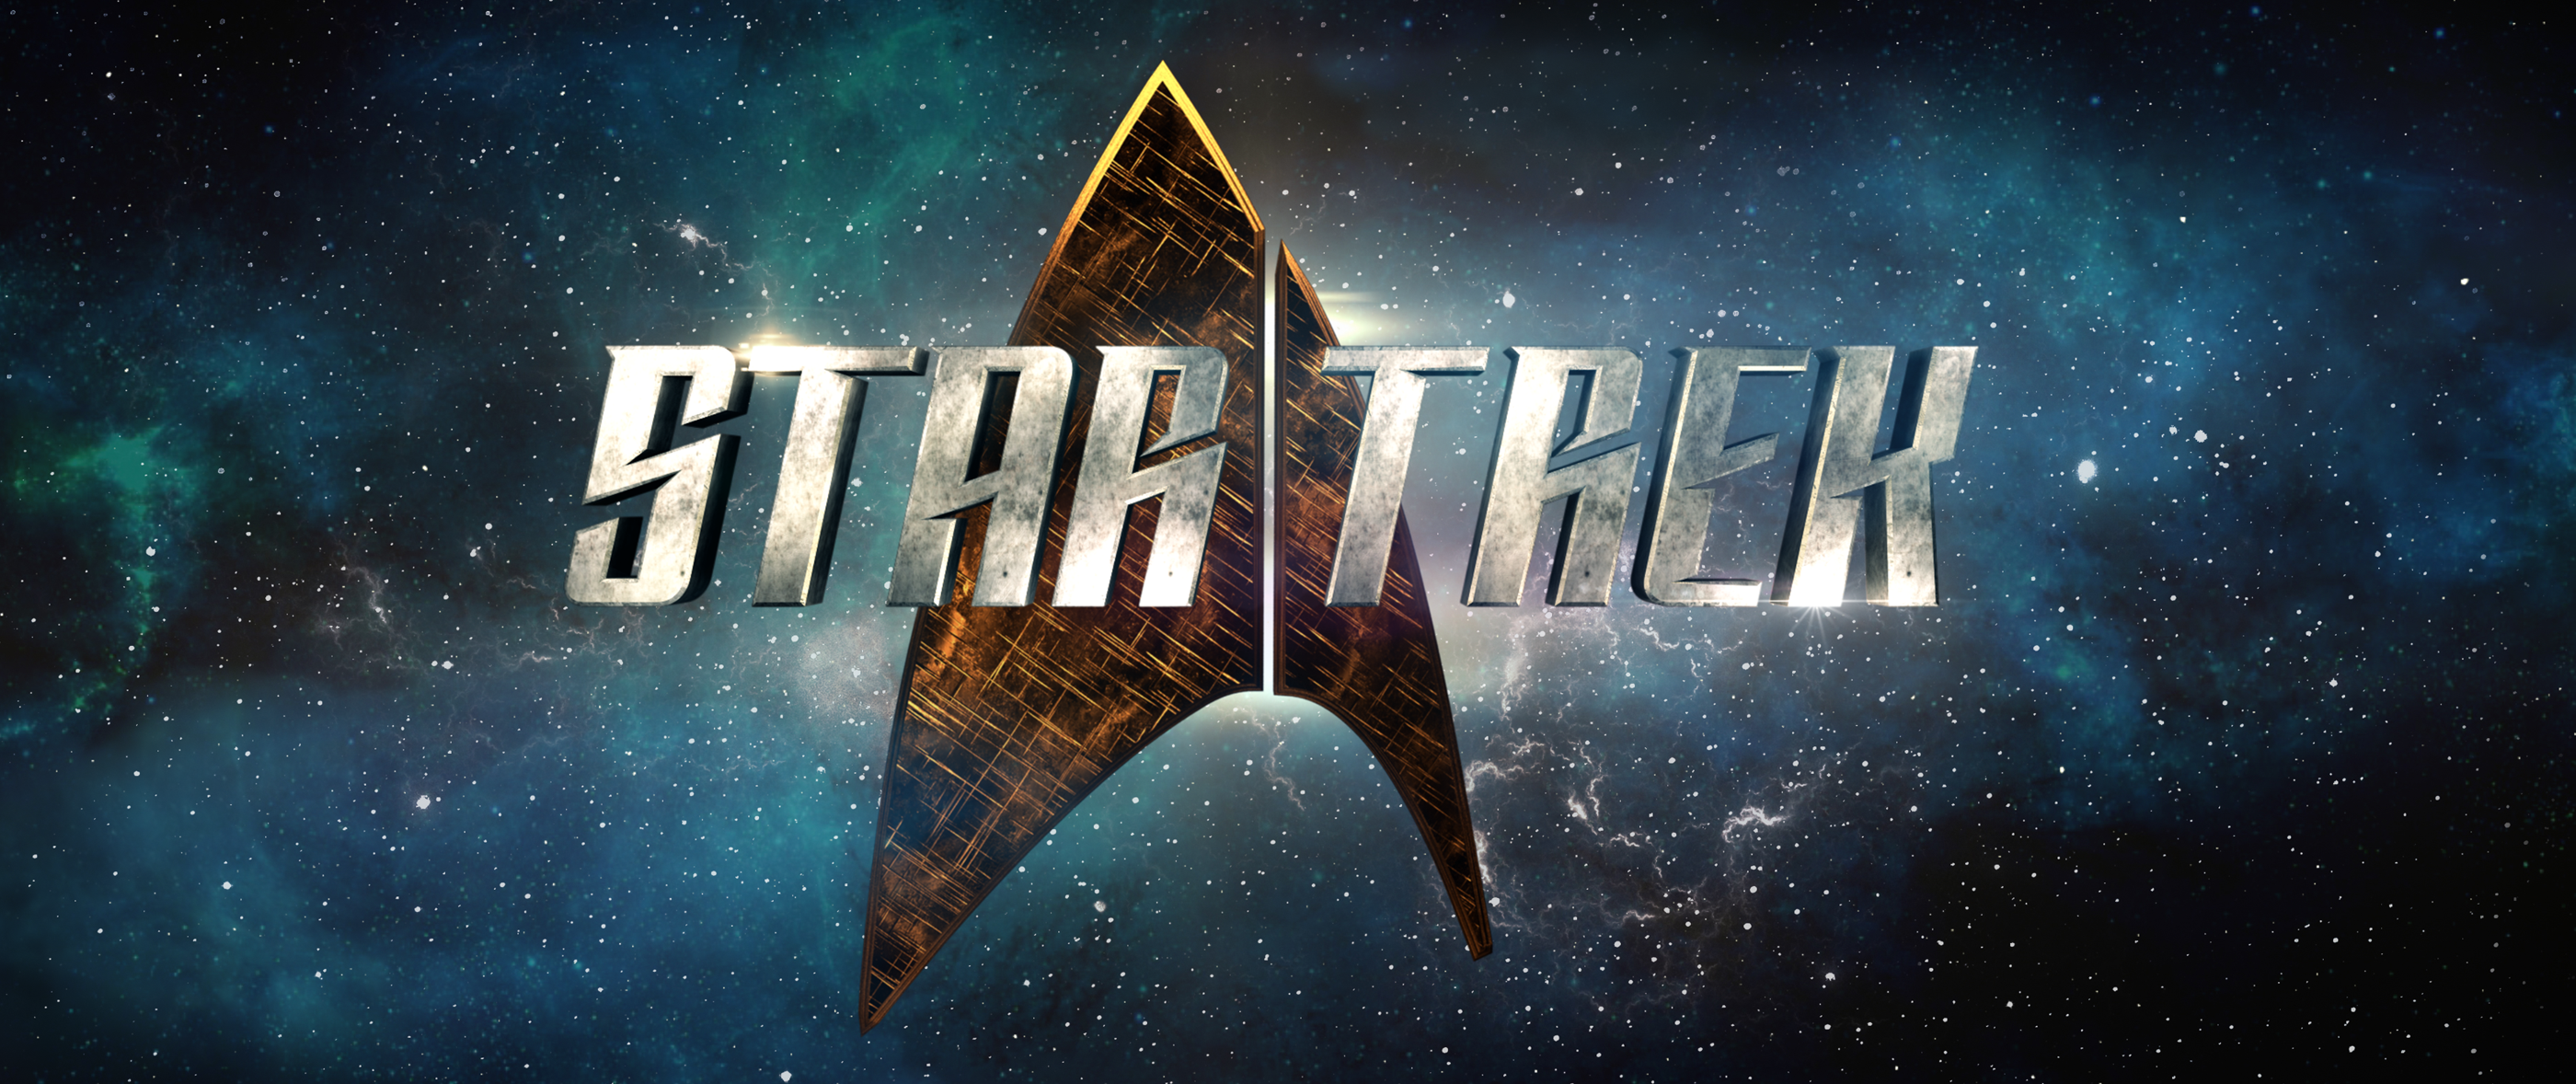 New Star Trek Logo Wallpaper Zoom Comics Daily Comic